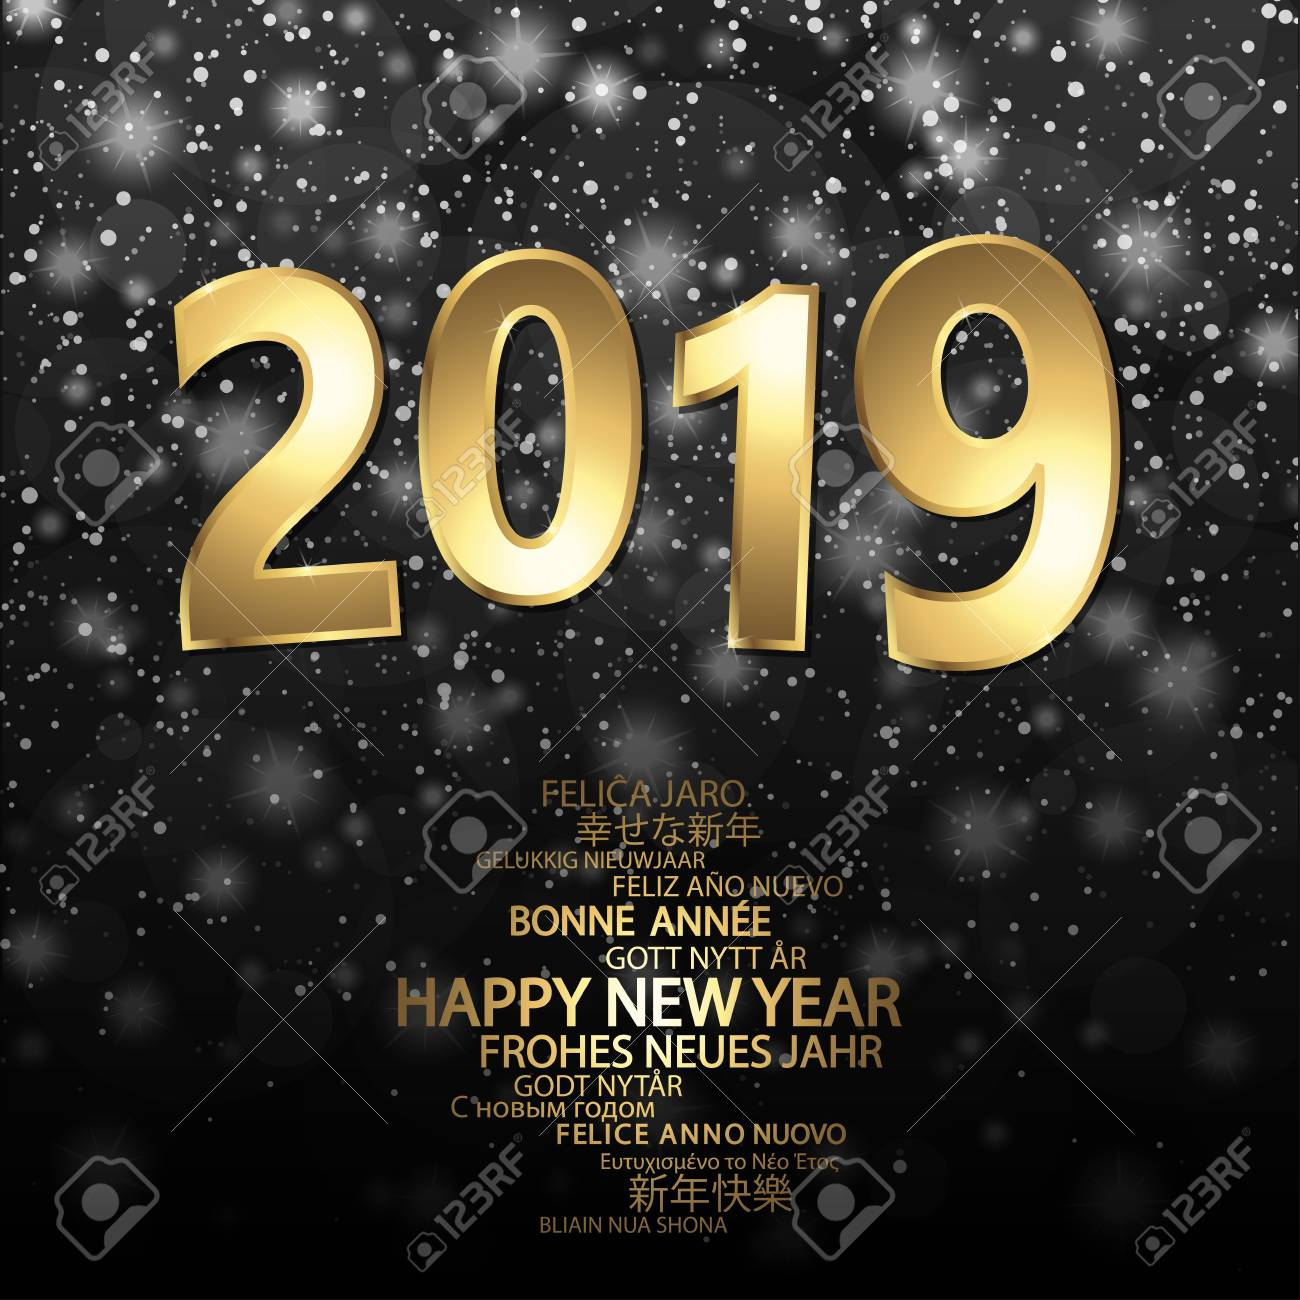 54fcec7089ad happy new year 2019 greetings with golden numbers and black background  Stock Vector - 113769103